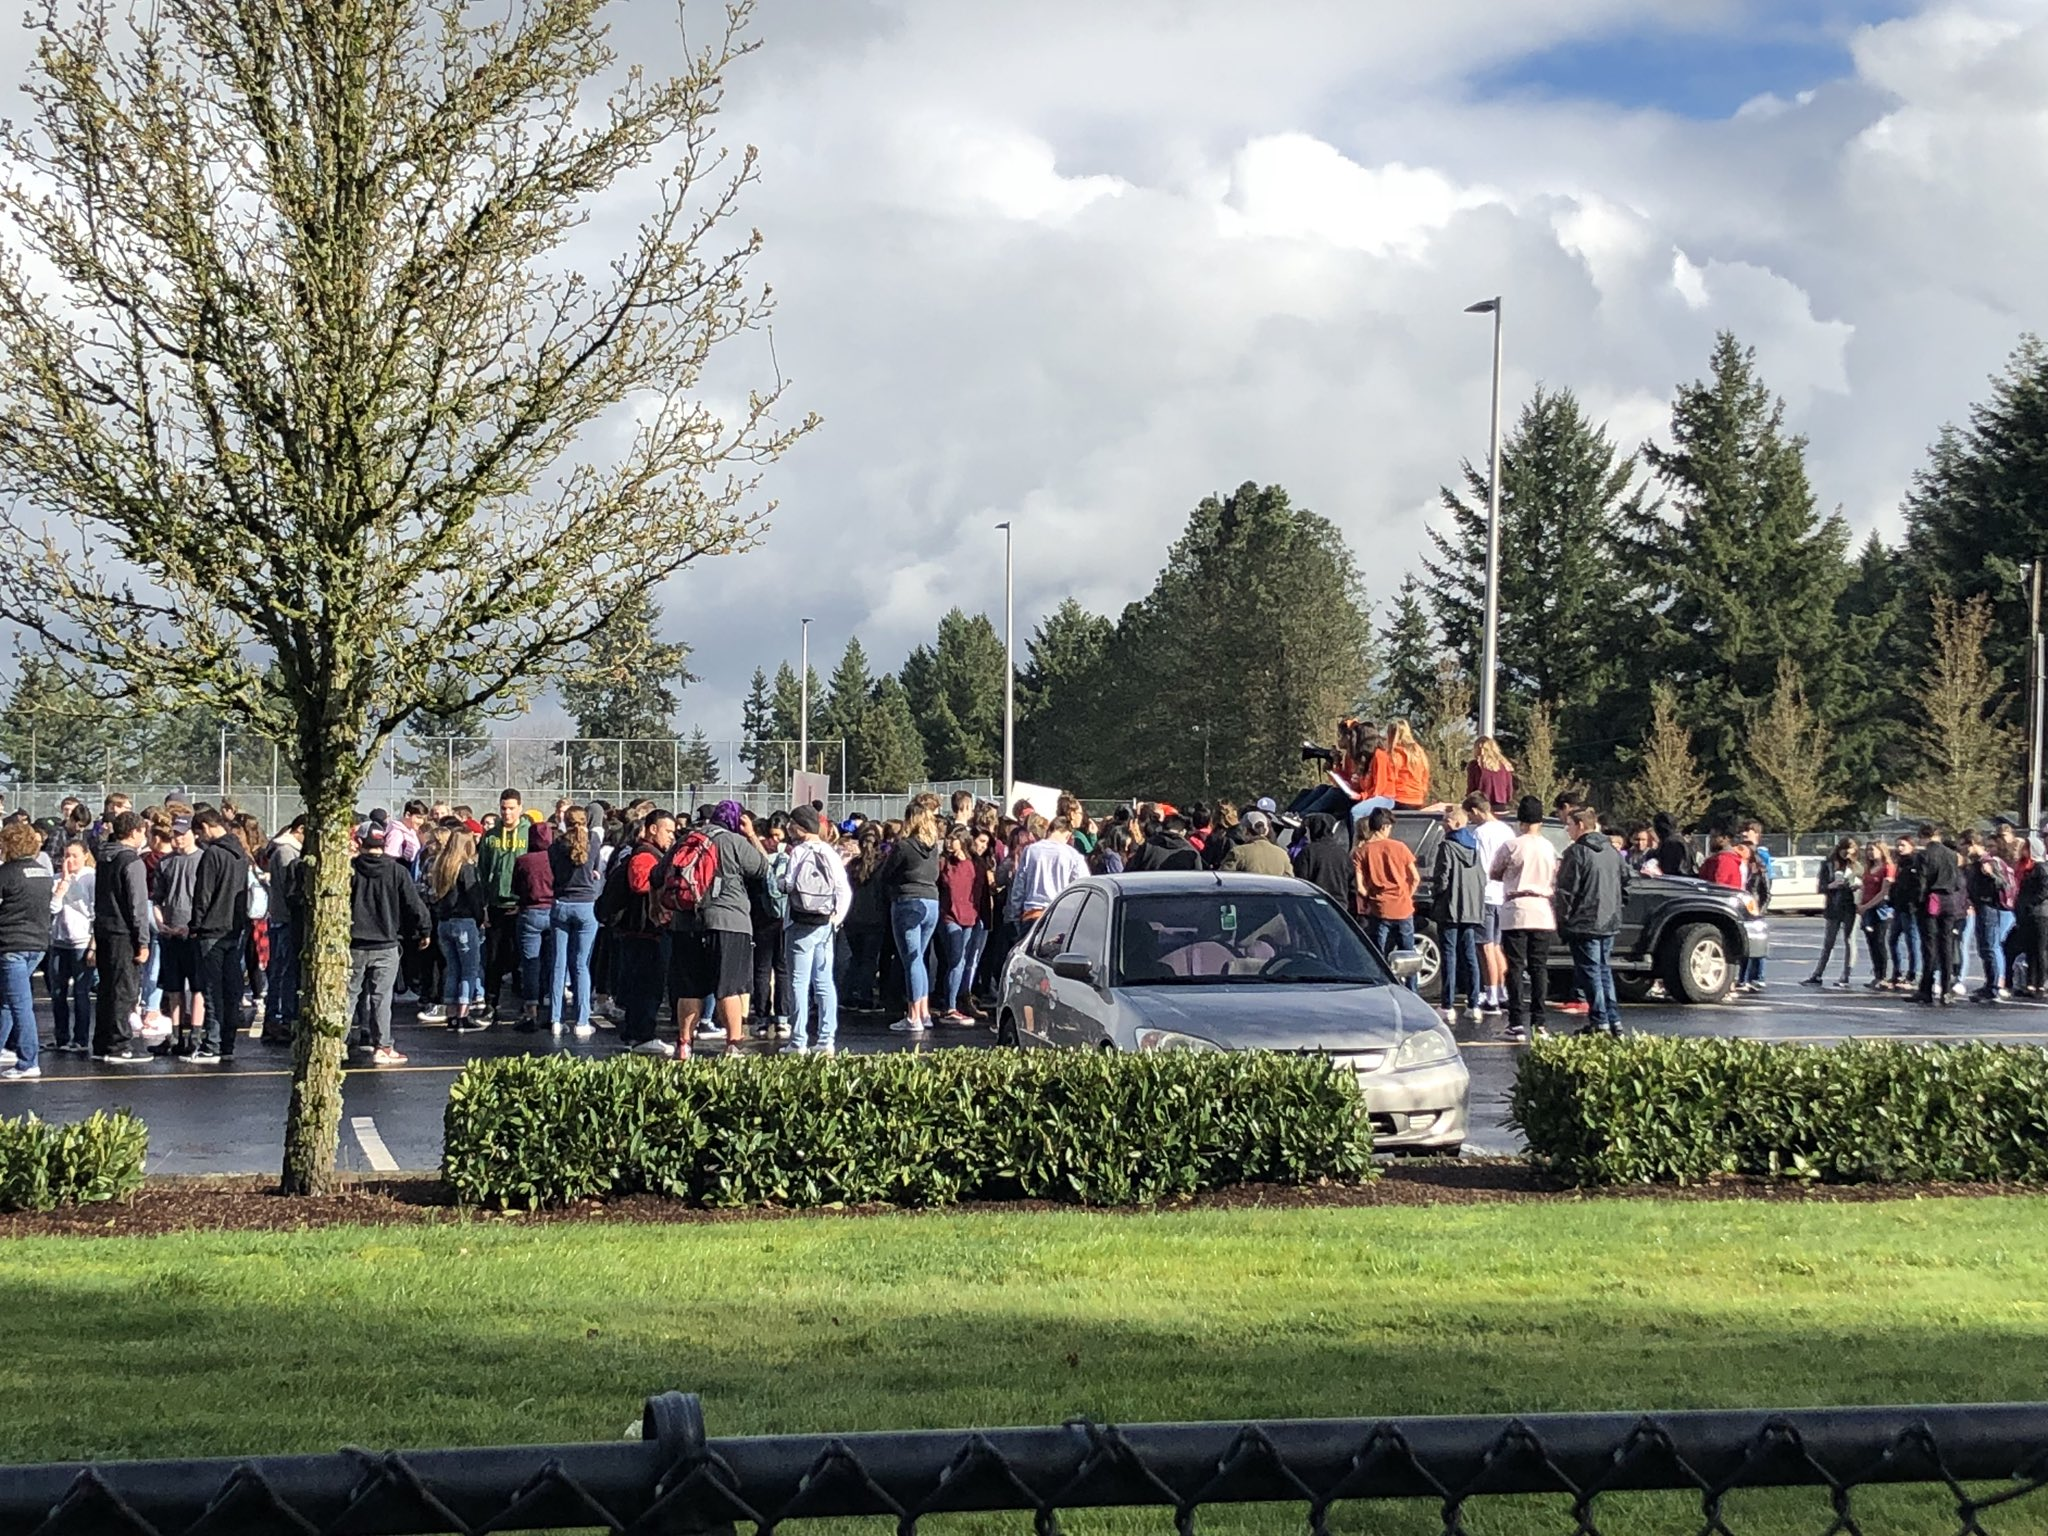 Share your walkout photos with KATU News for a chance to be featured on air or online at Burst.com/KATU{ }